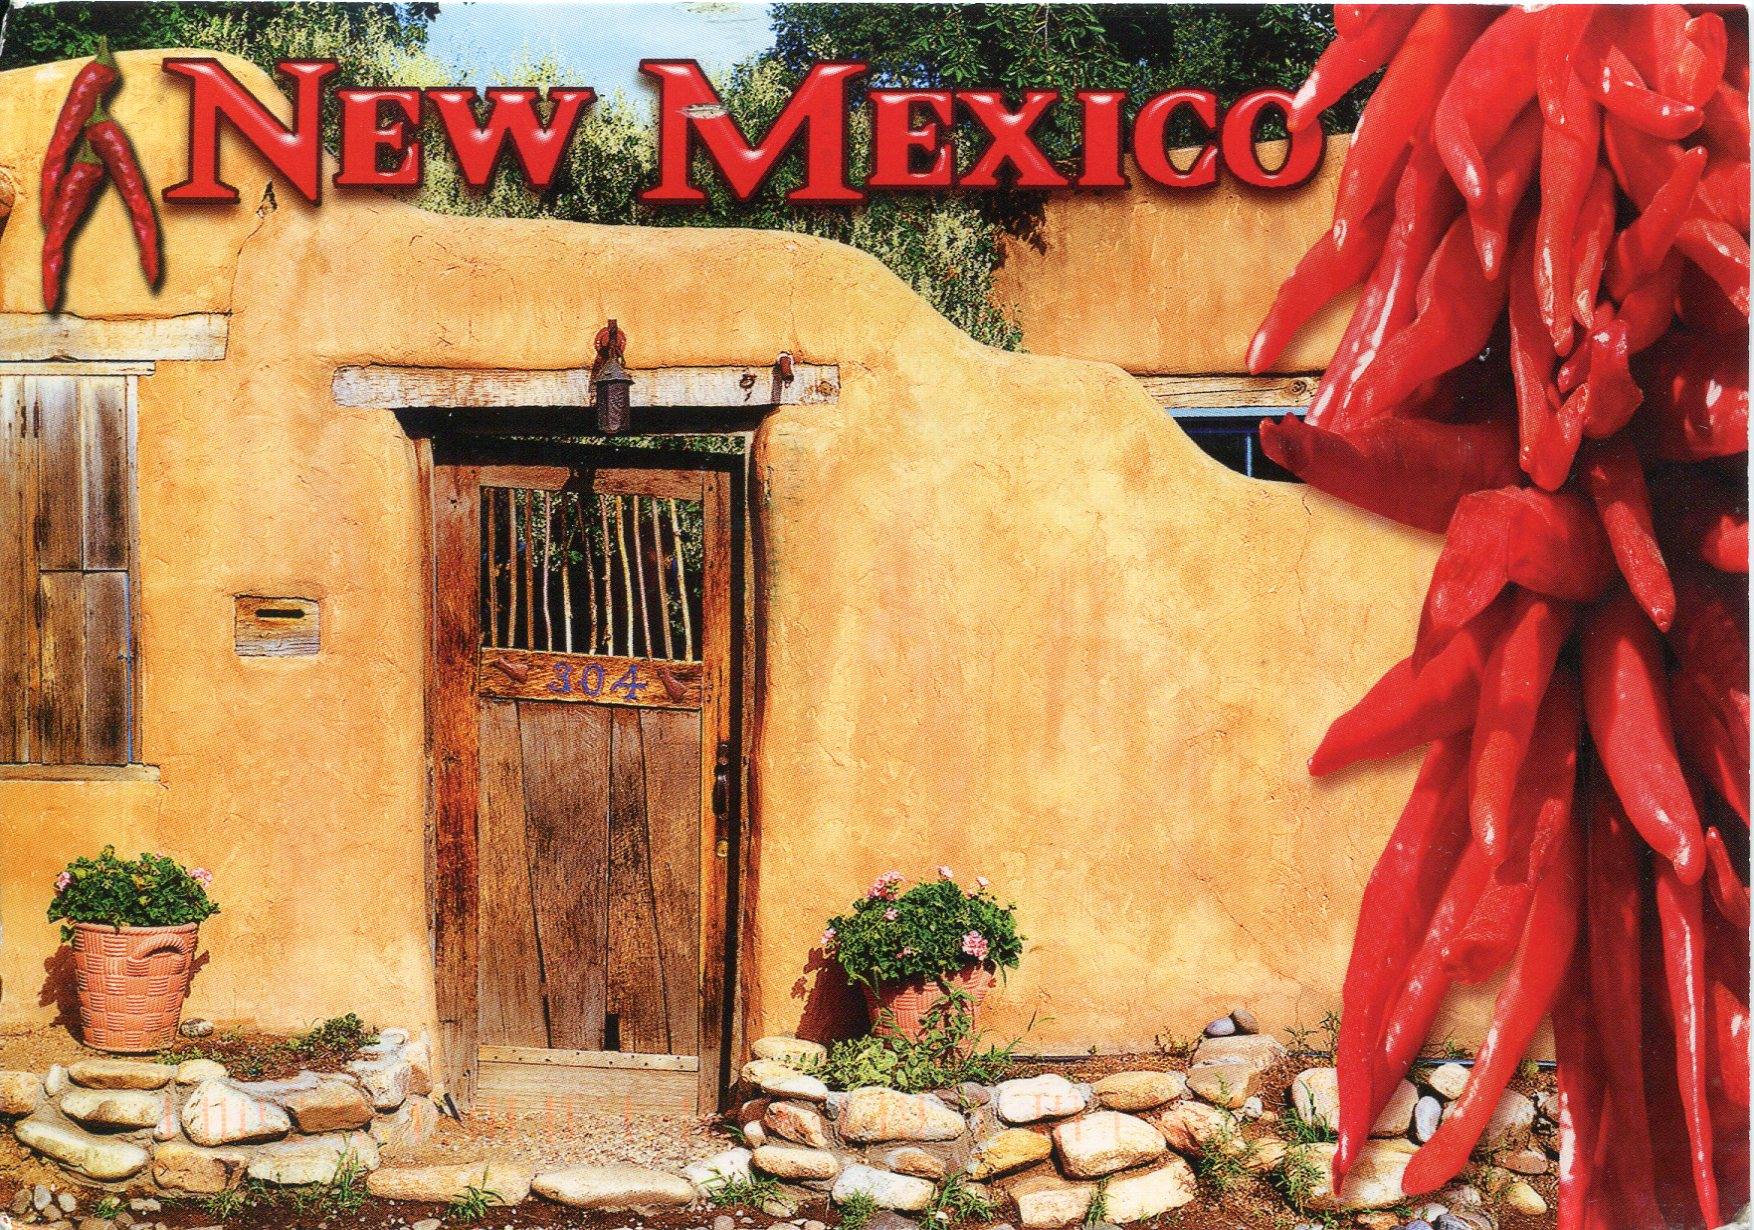 Completely new Santa Fe, New Mexico | Remembering Letters and Postcards YW25